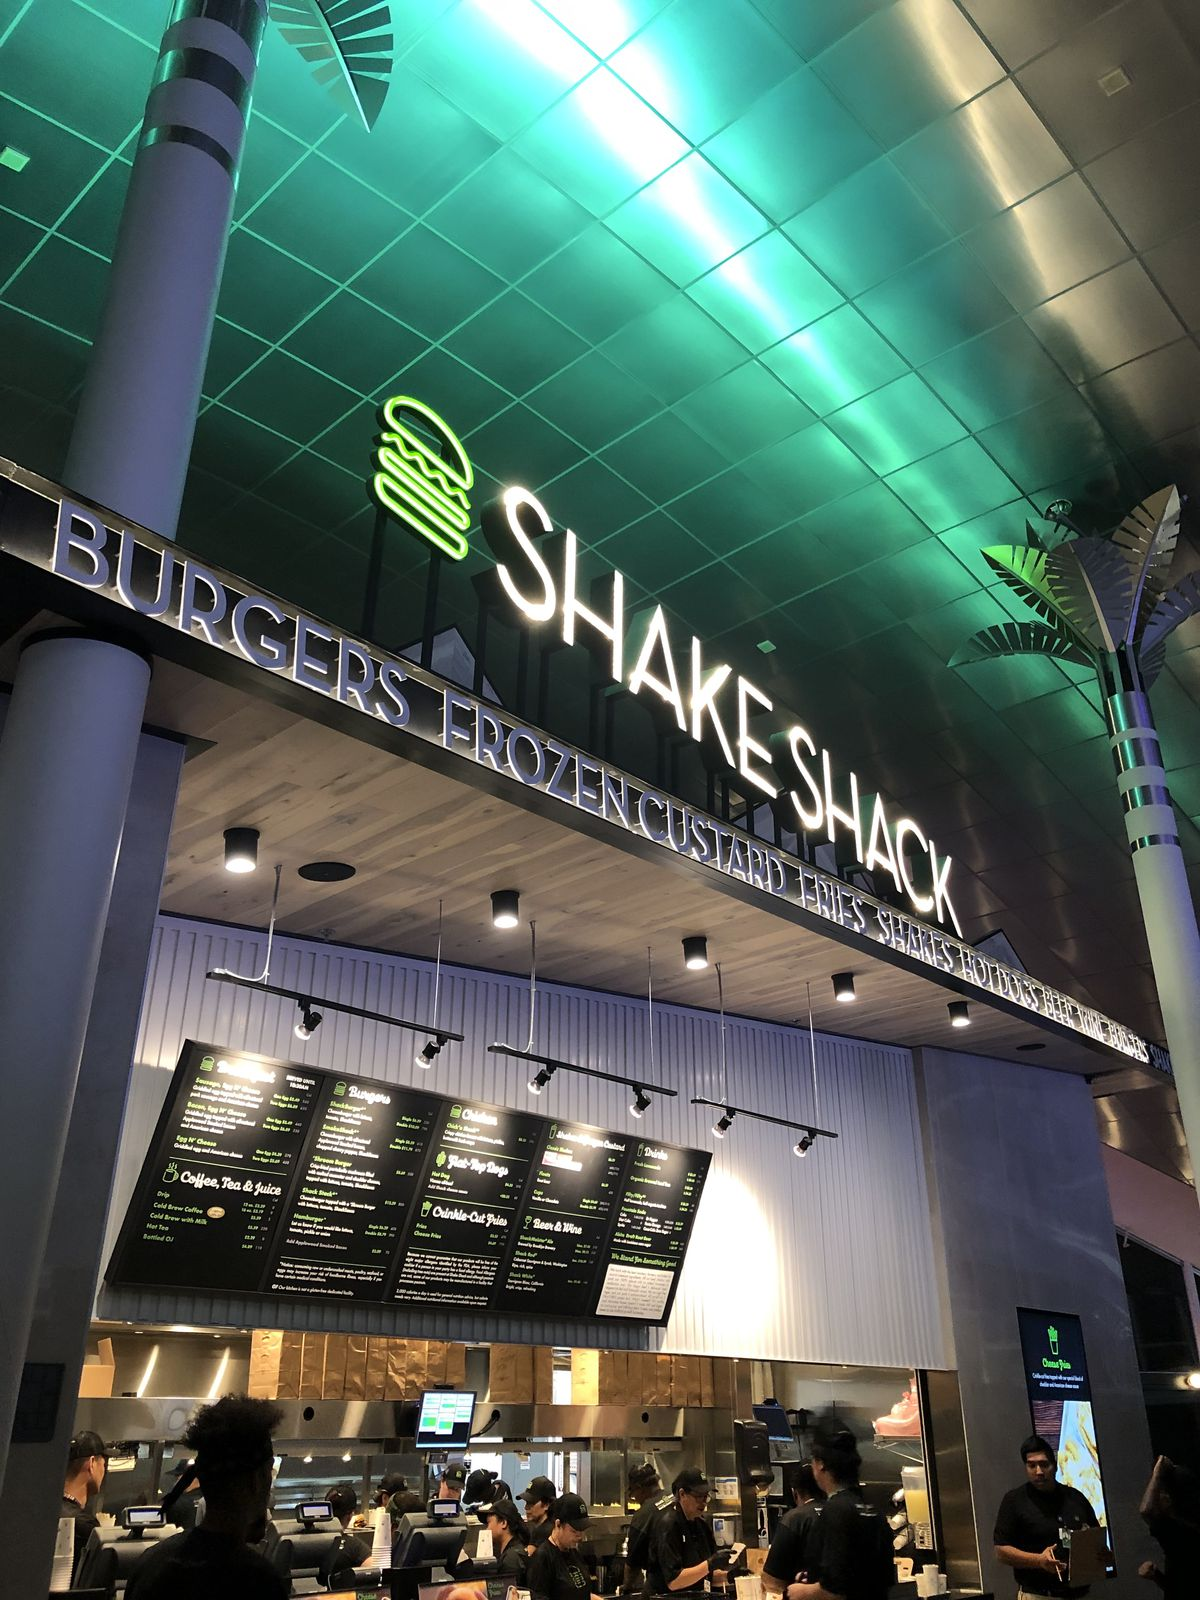 A view of the Shake Shack now open at McCarran International Airport